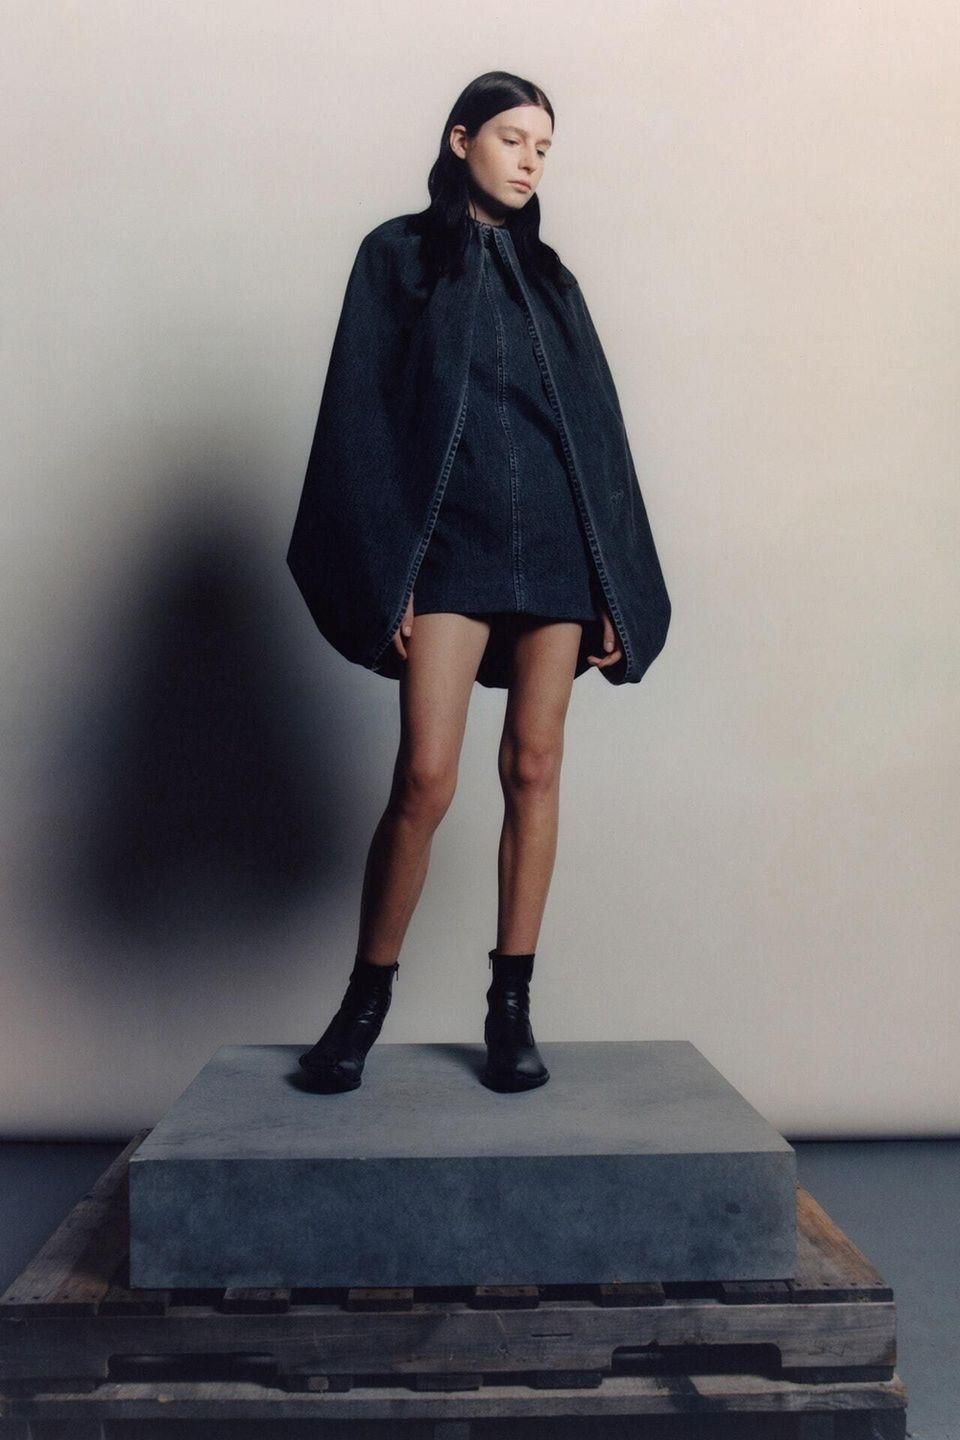 """<p>Spring 2021 marks the 5th anniversary of LRS, designer Raul Solís's genderless—or """"Gender X"""" as he likes to call it—collection. And to celebrate the occasion, the Proenza Schouler alum served up the cool denim he's known for in new elevated shapes, including knee-length tailored shorts and a couture-like bubble mini dress with a built in cape. His signature wit and new attention to silhouette were also evident in an ethereal blue acetate overcoat with heavy chain details and an XL ribbed turtleneck dress that can be worn above the nose as a face covering, while leaving the midriff exposed. <em>—Alison S. Cohn</em></p>"""